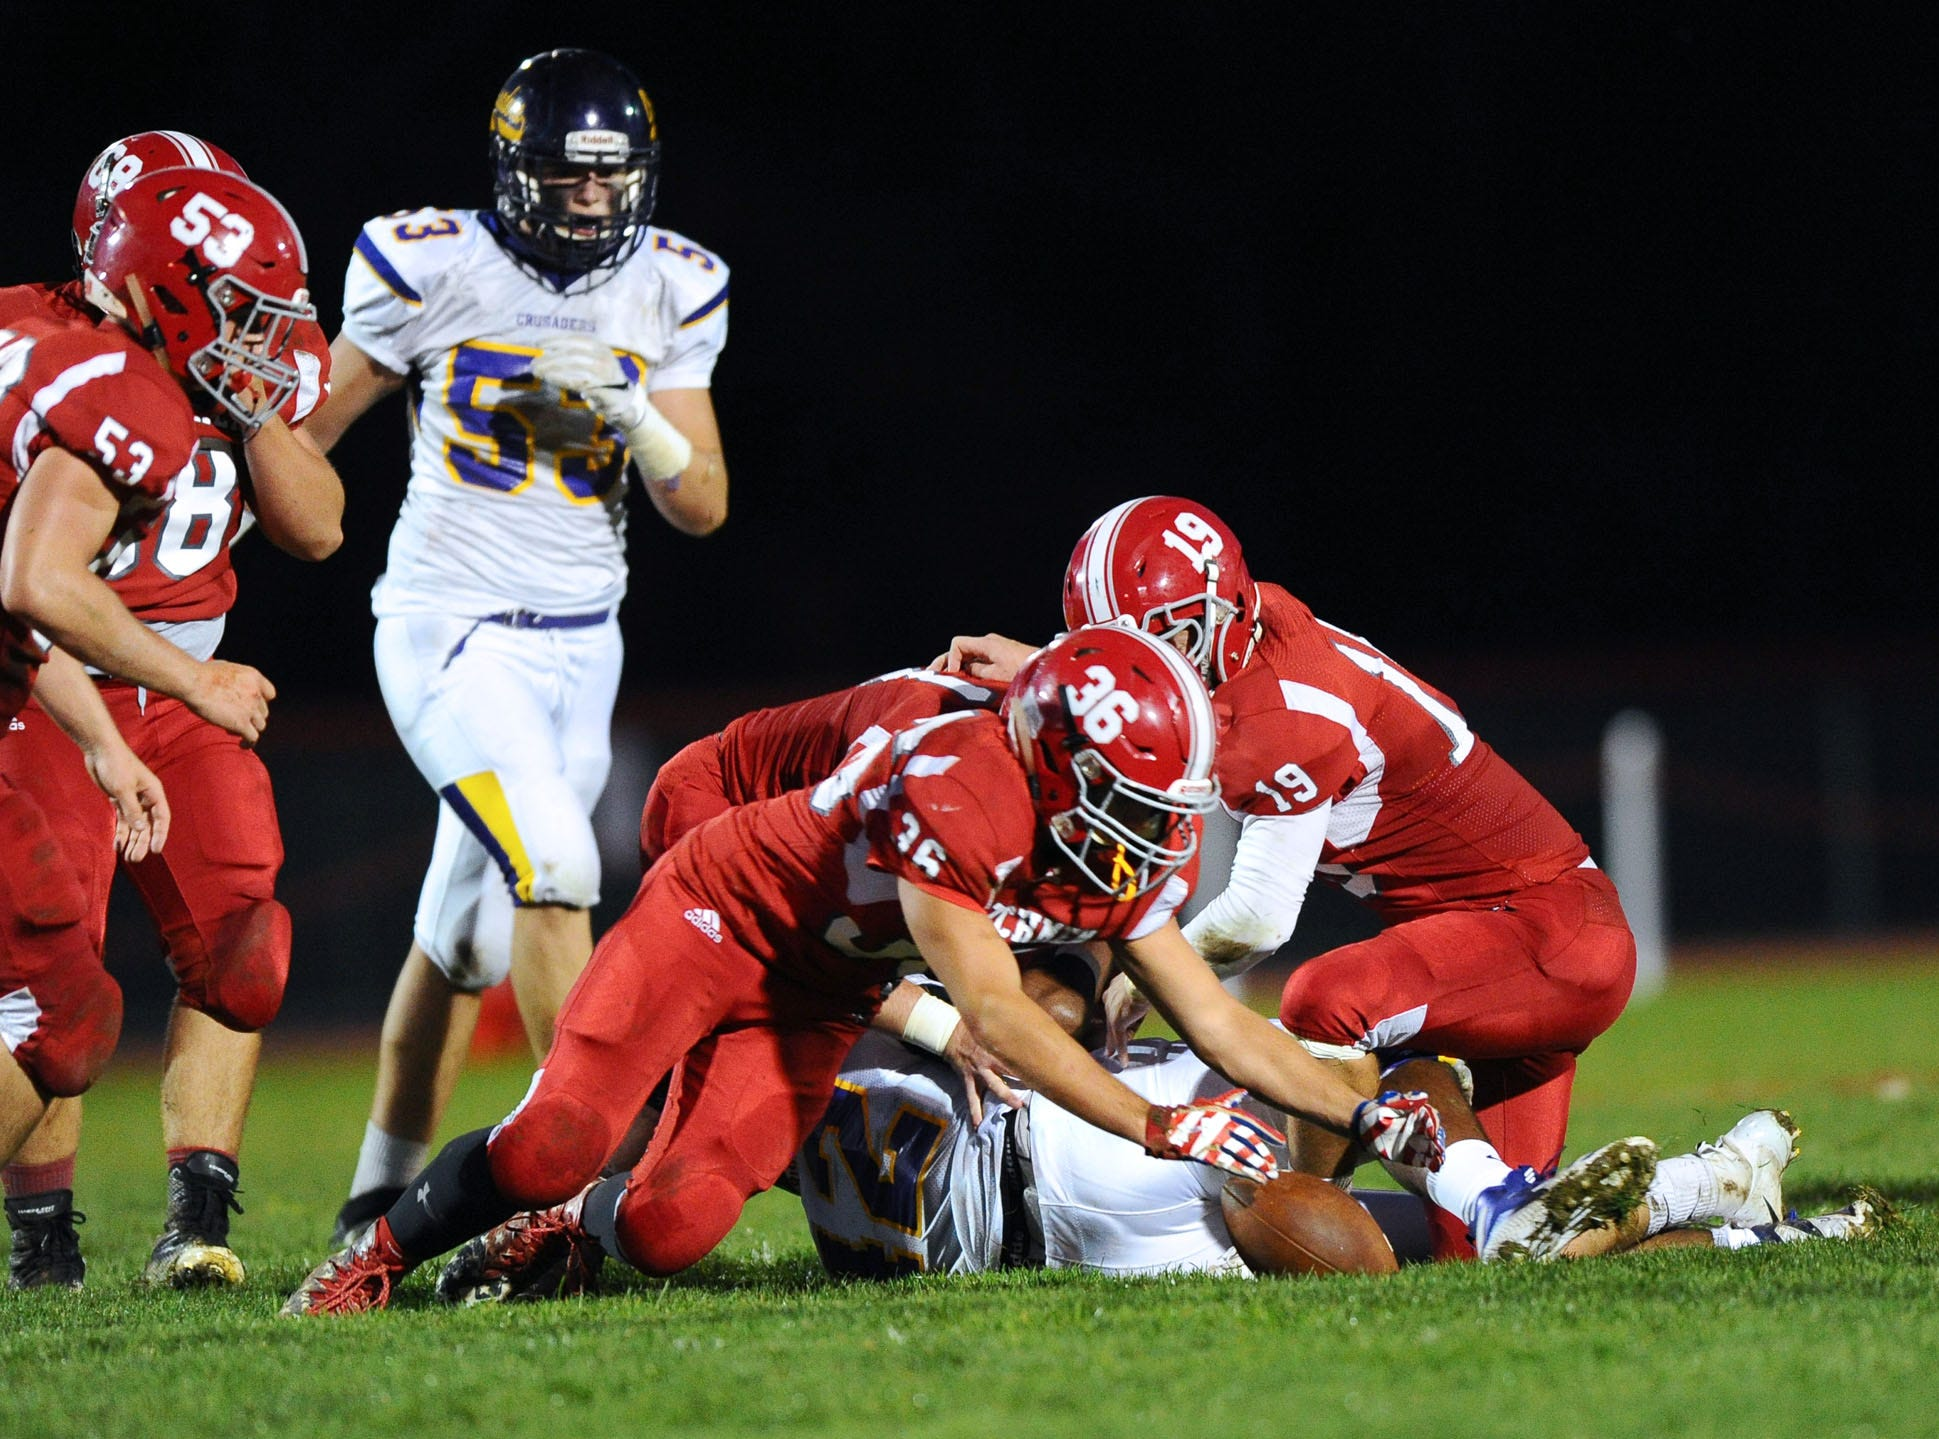 Annville Cleona's Romeo Varela (36) recovers a fumble during the 1st quarter of  Friday night's game against Lancaster Catholic.